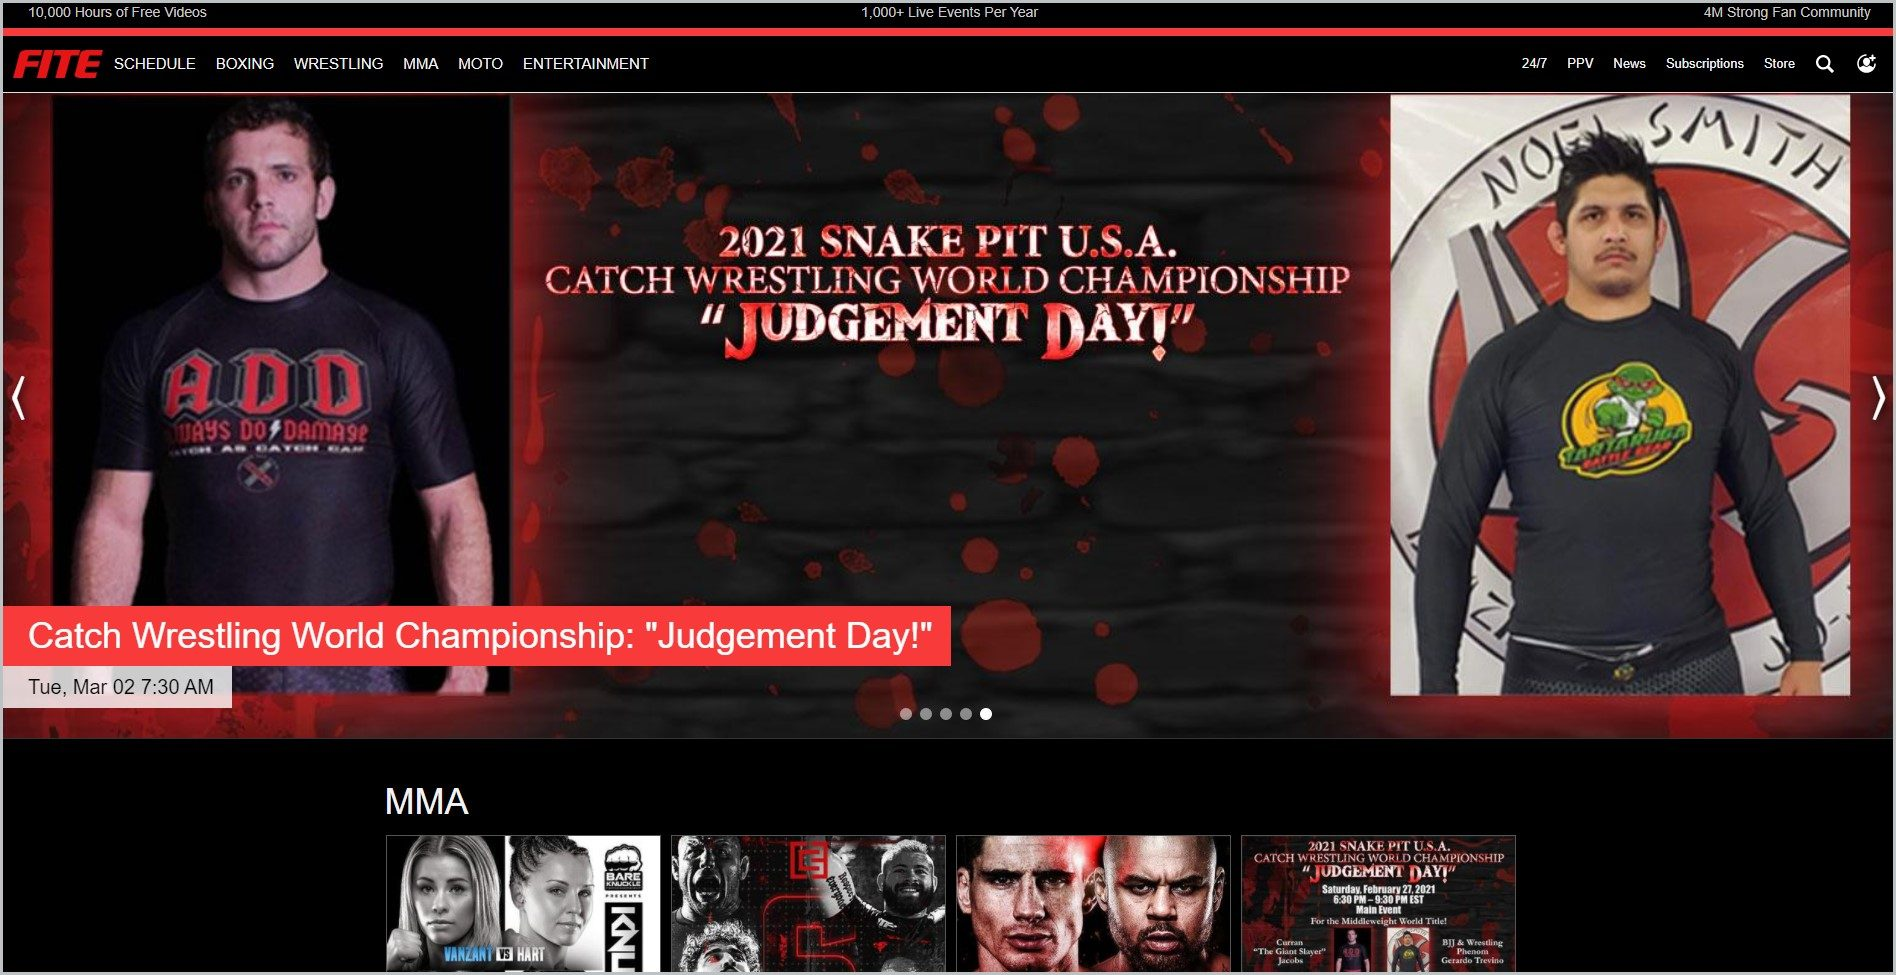 screenshot of FITE homepage showing two MMA Fighters and fight schedule for main image